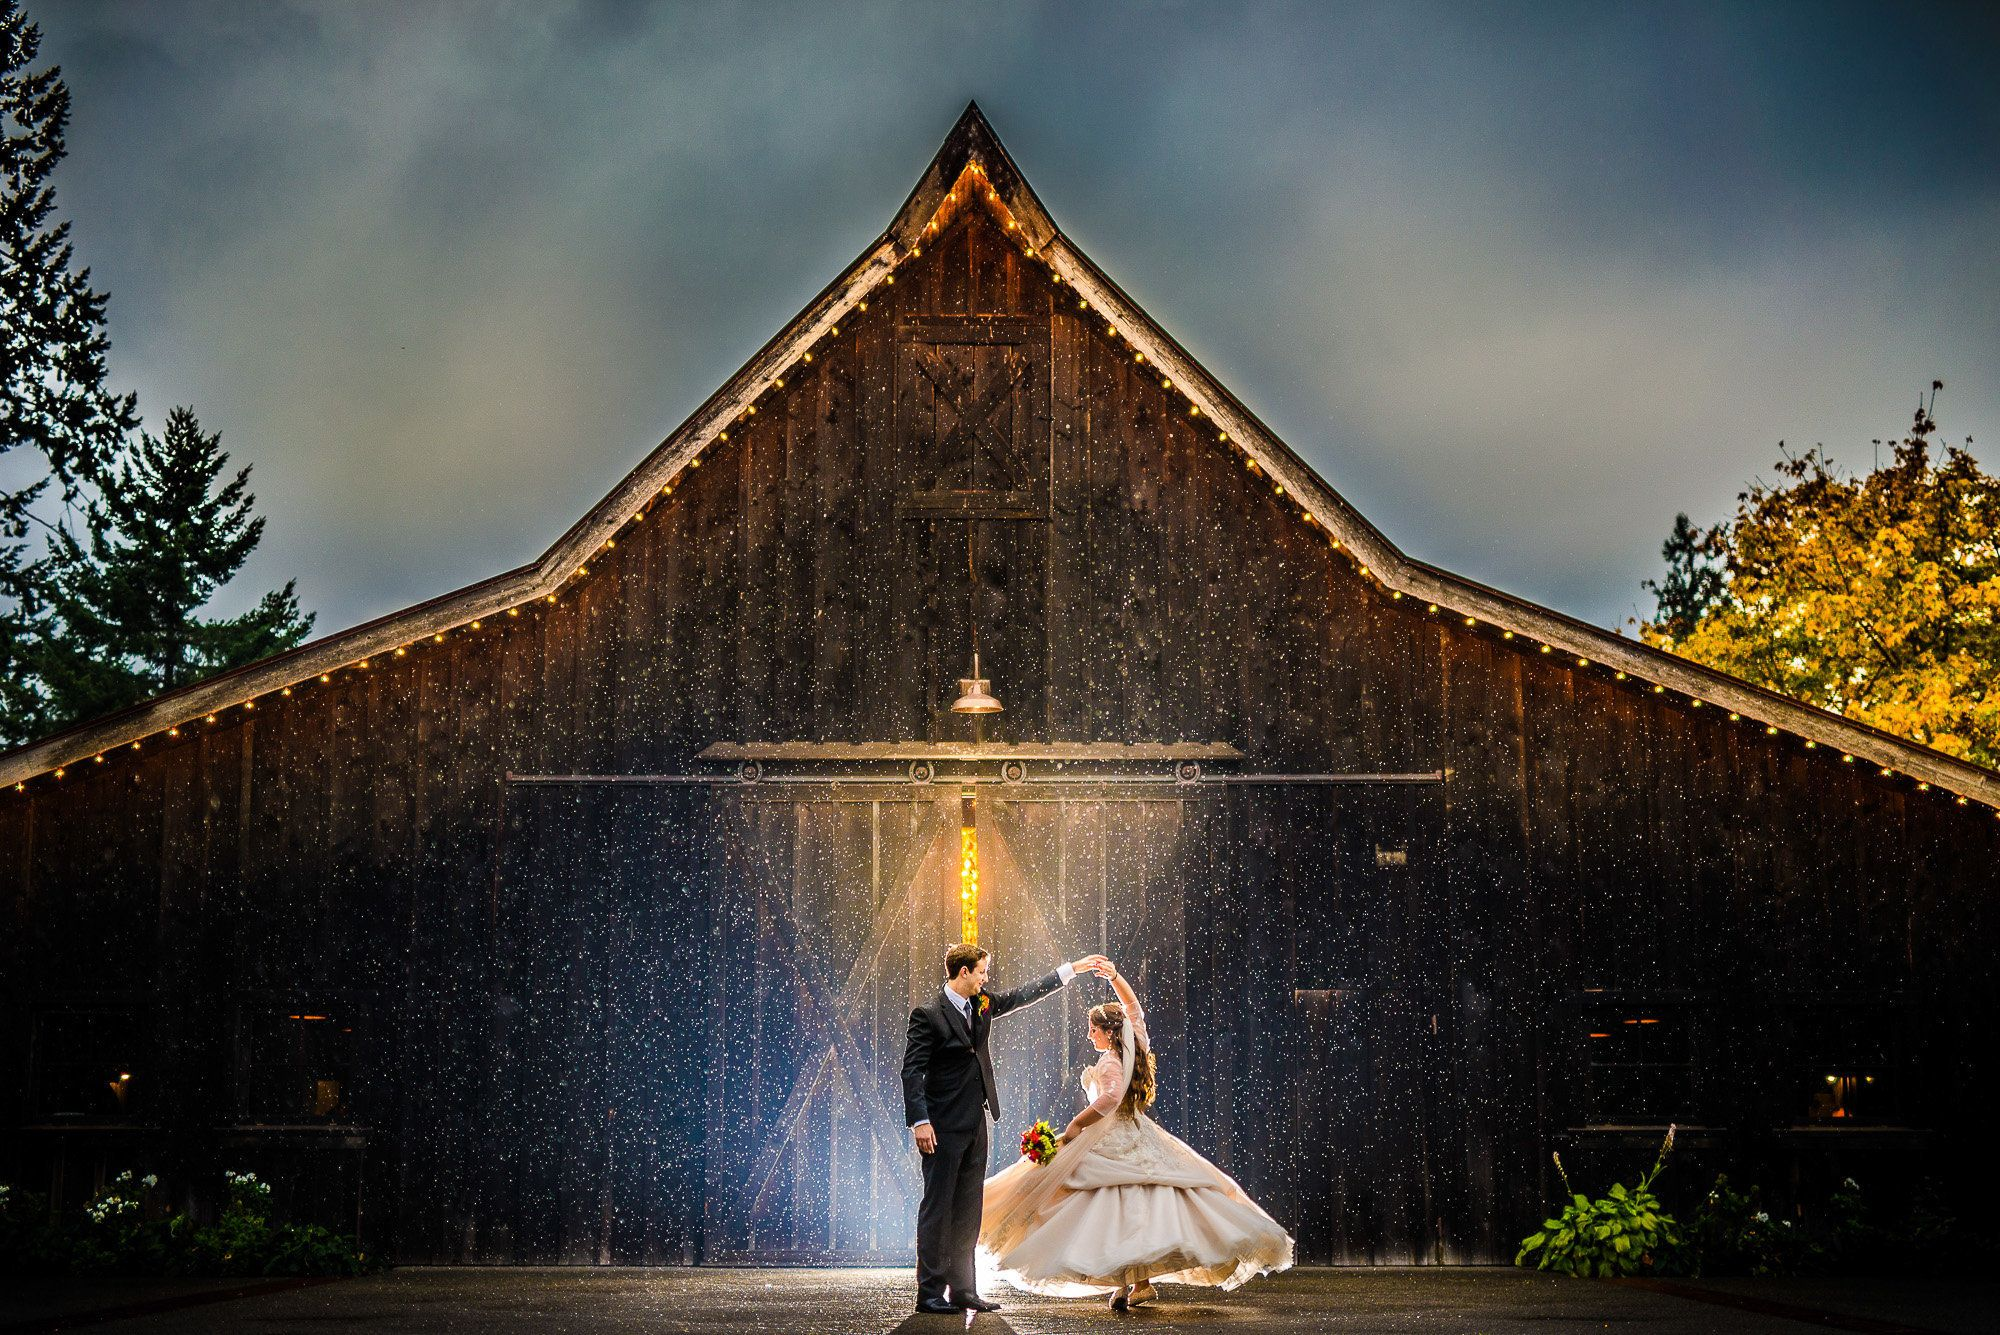 18 beautiful barn weddings that will charm your socks off | huffpost